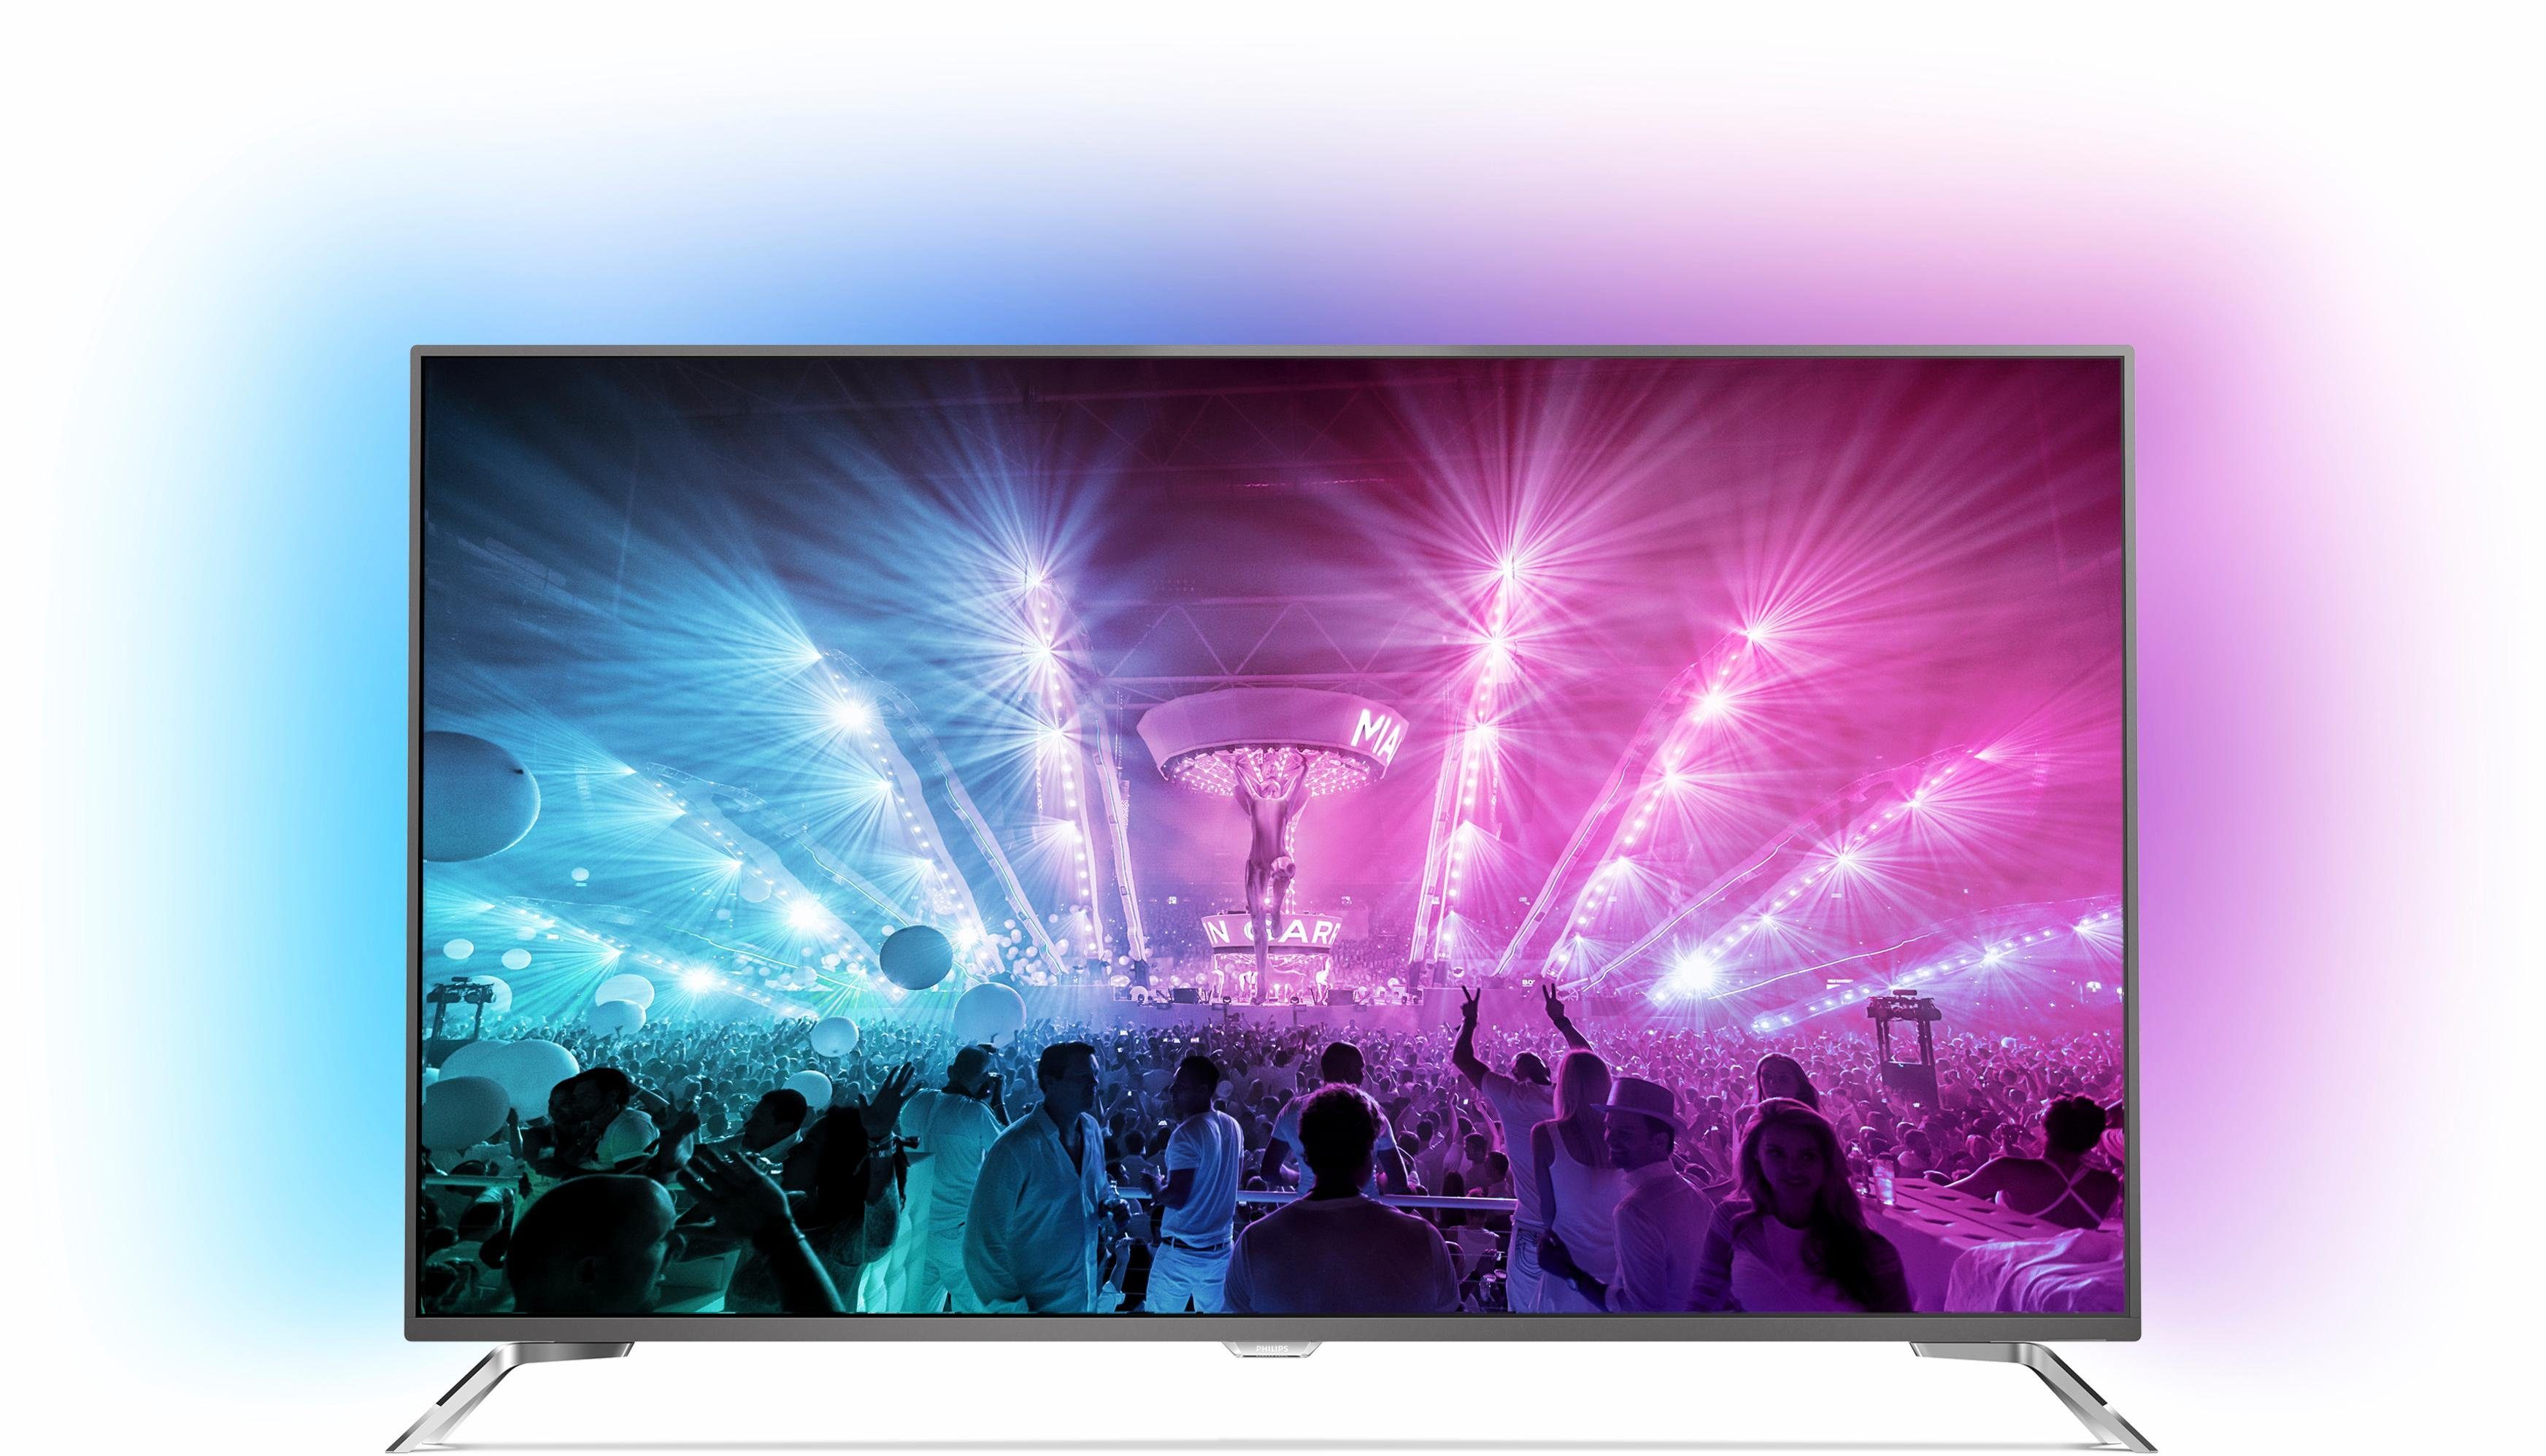 Philips 75PUS7101/12, LED Fernseher, 189 cm (75 Zoll), 2160p (4K Ultra HD) Ambilight, Smart-TV